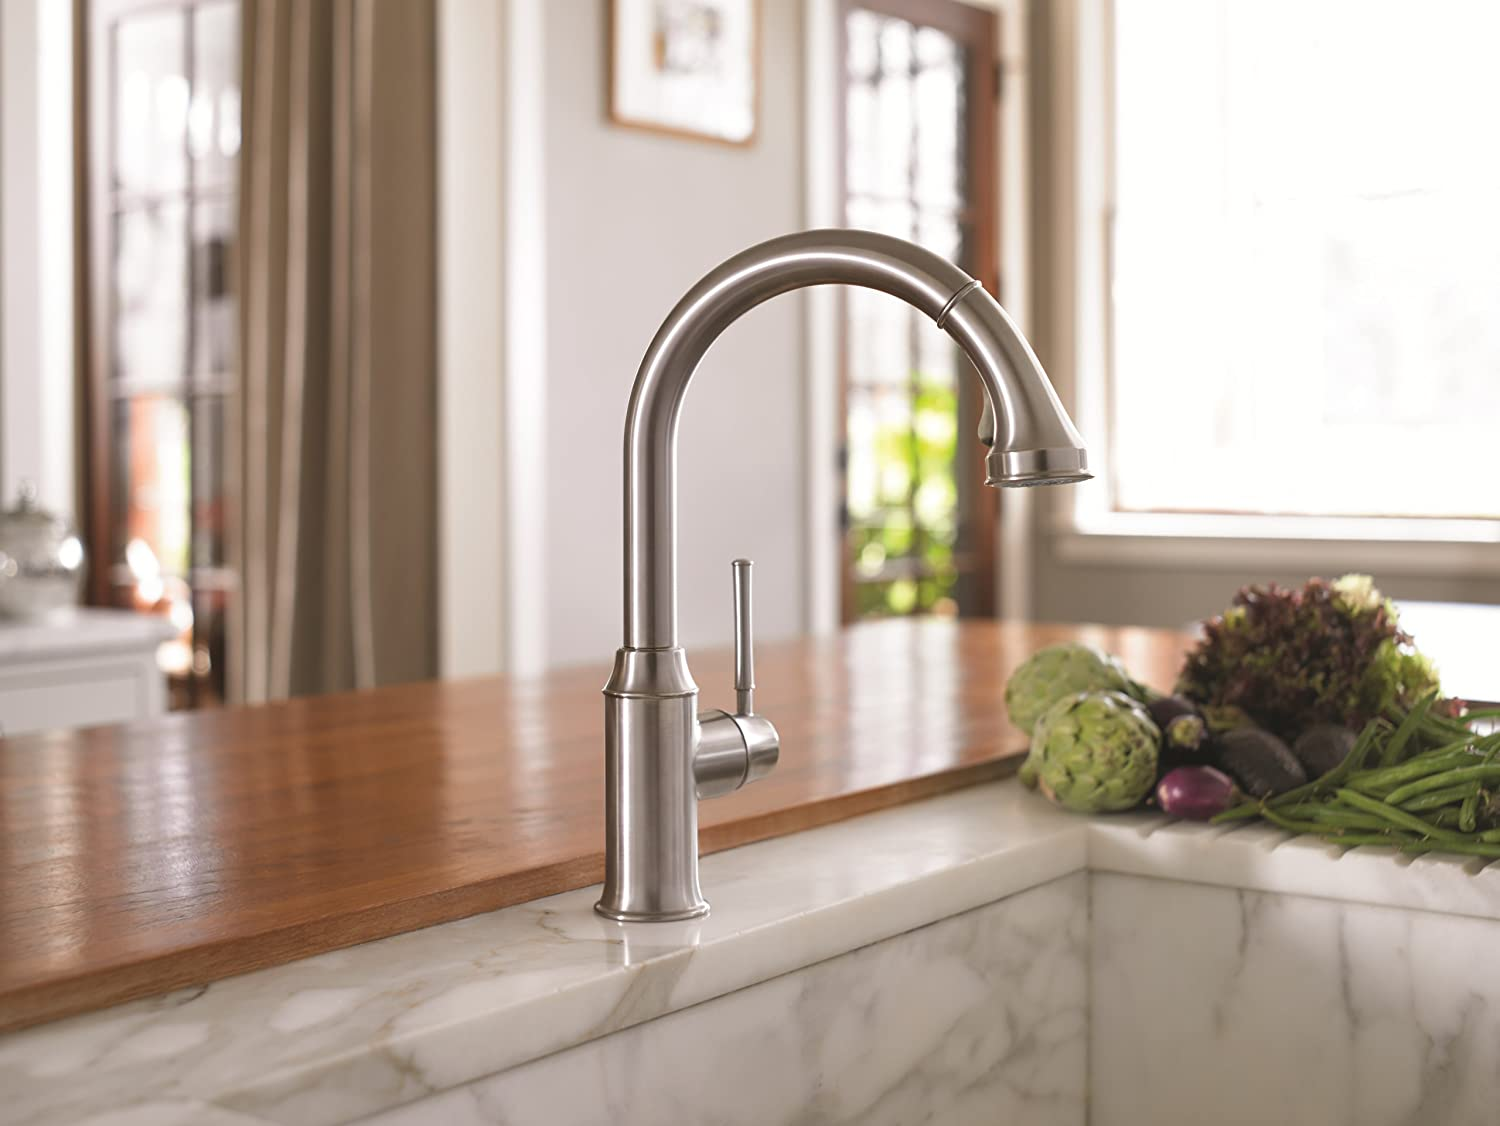 hg talis c higharc single hole kitchen faucet wpull down 2 spray touch on kitchen sink faucets amazoncom